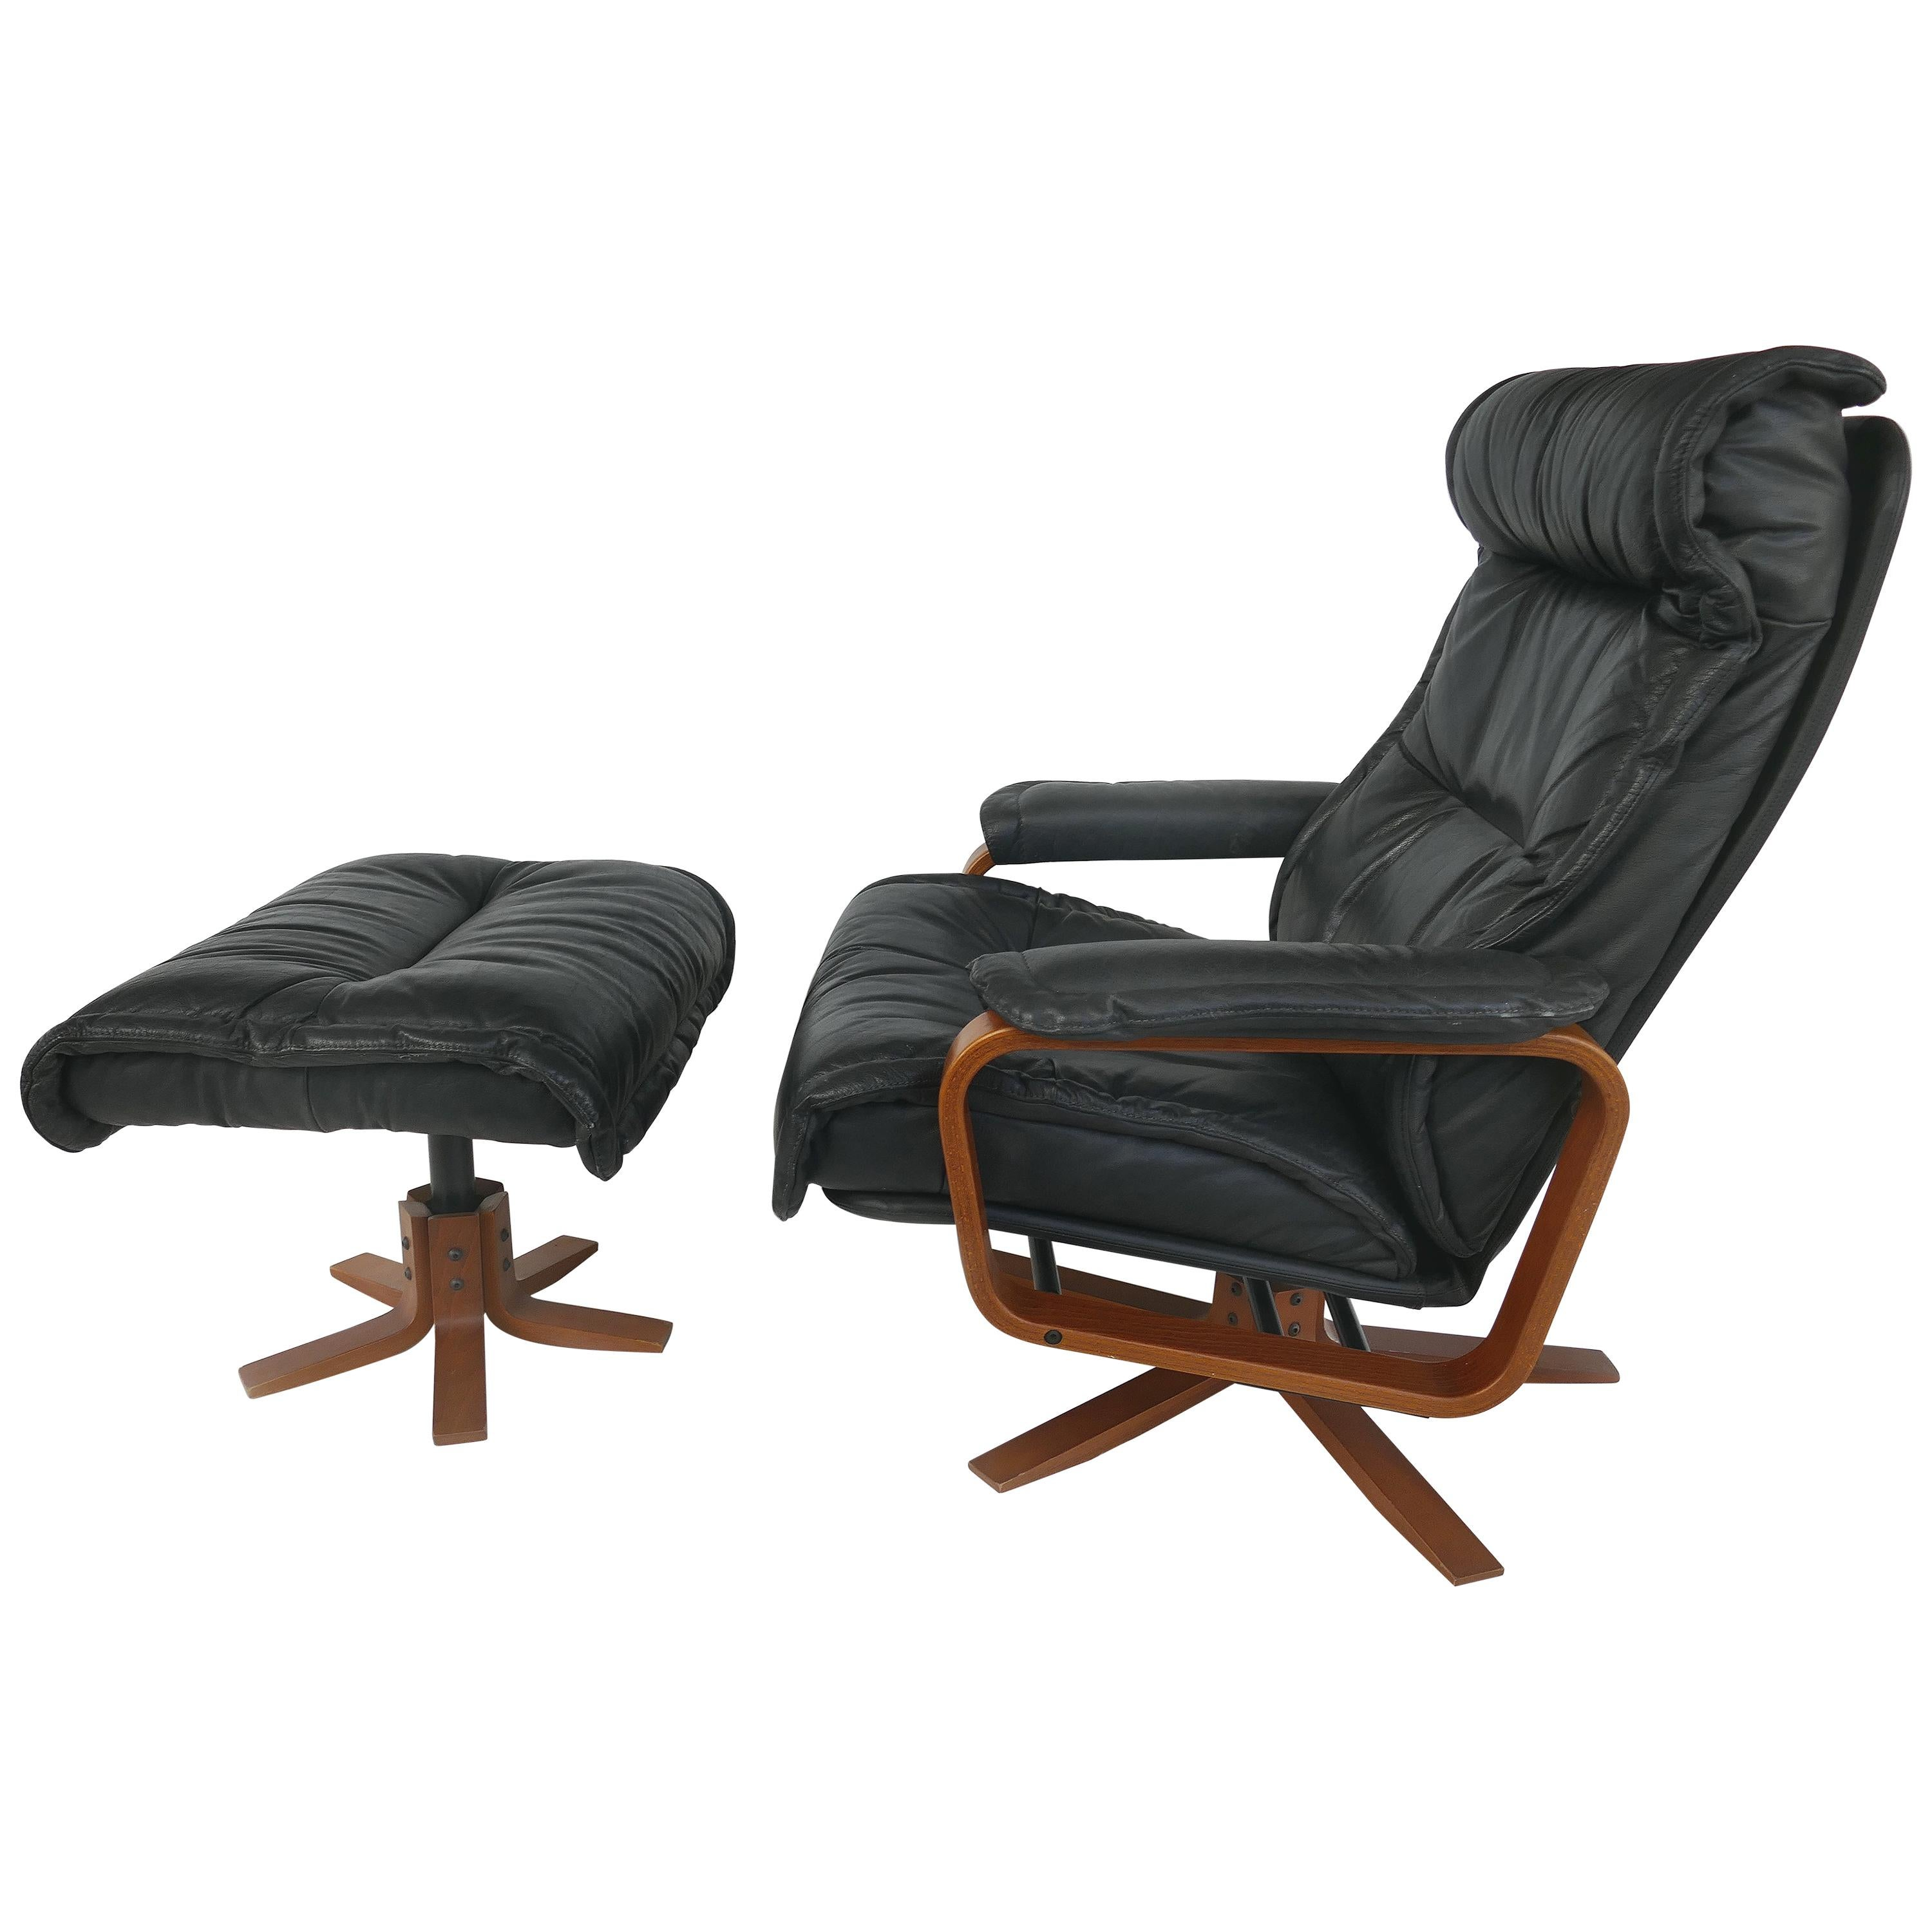 Svend Skipper for Skippers Mobler Reclining Armchair and Ottoman in Teak